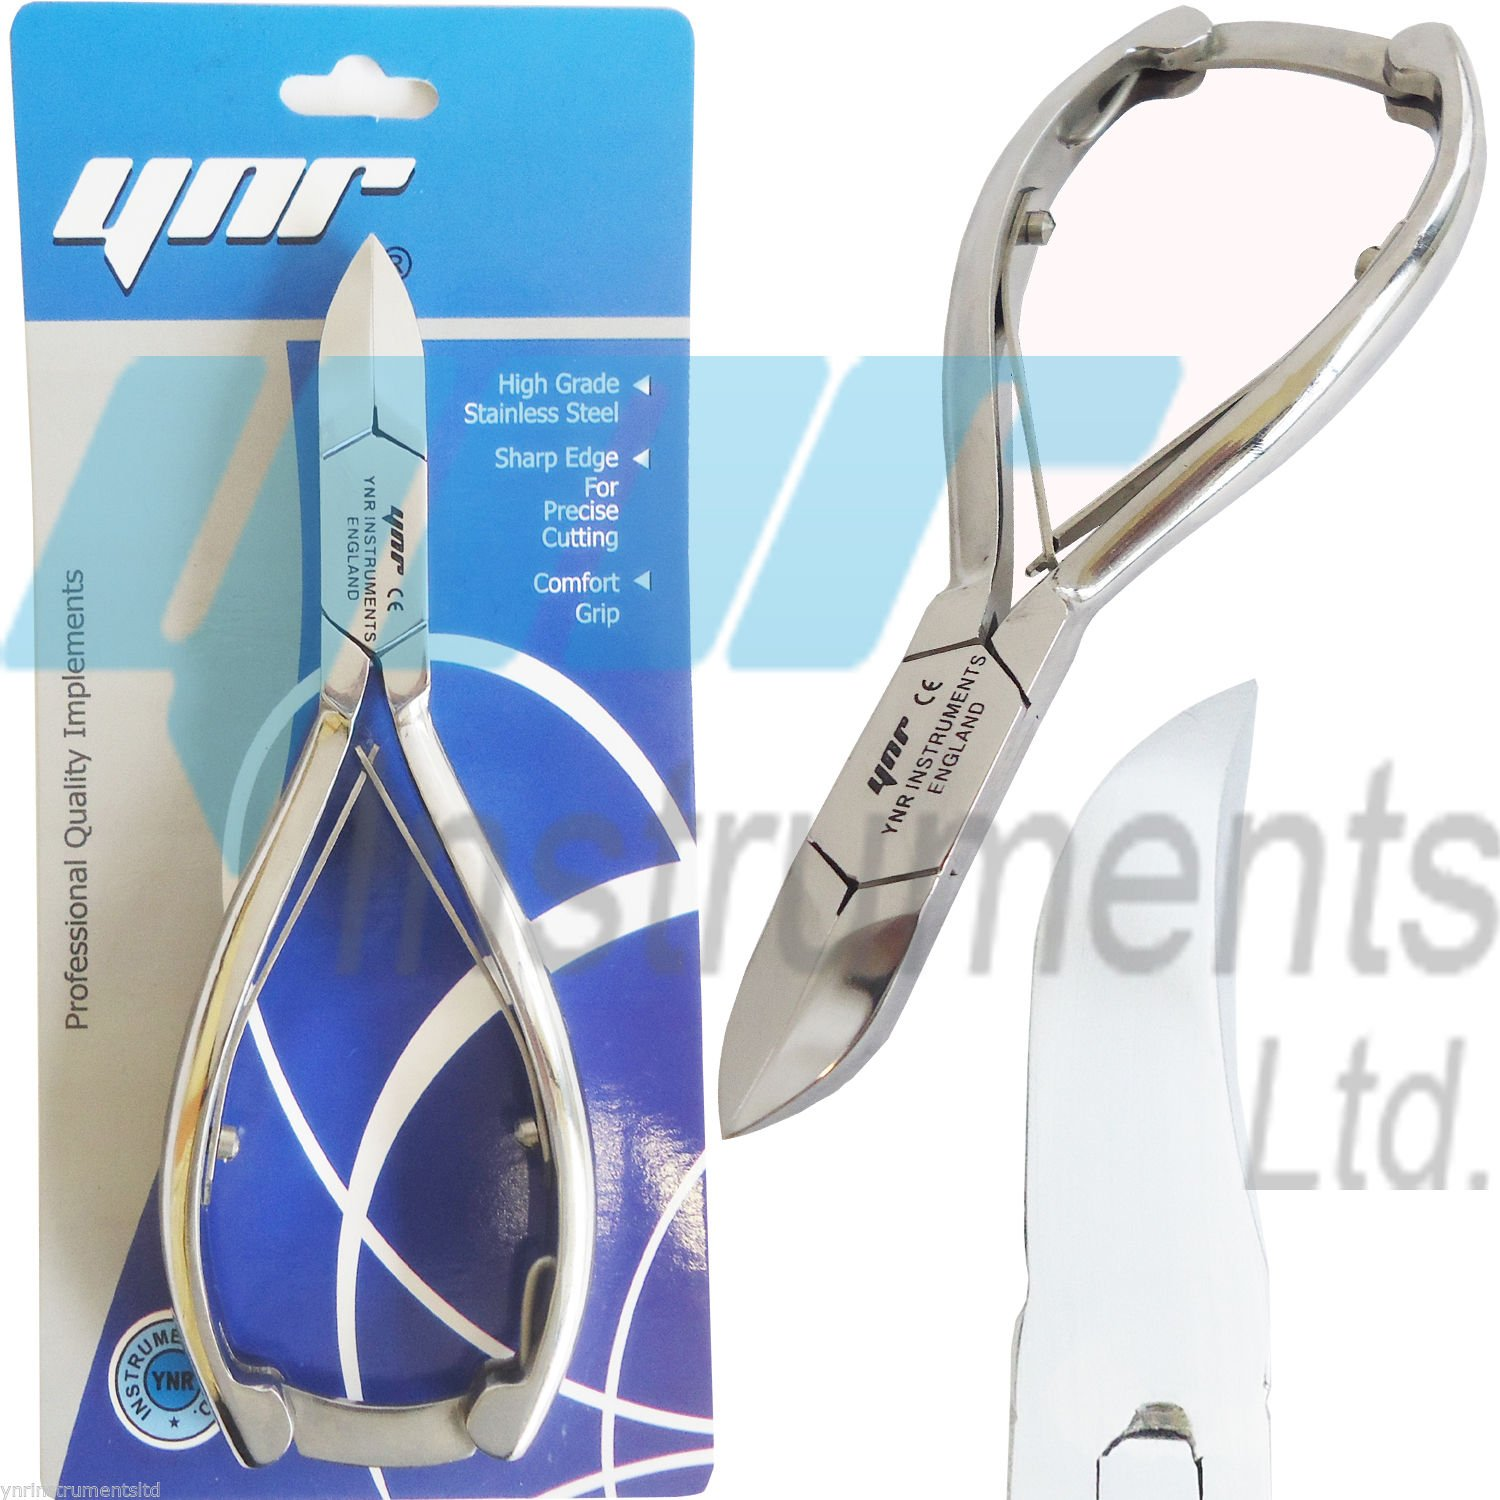 Professional Toe Nail Cutters Clippers Nippers Chiropody Podiatry Heavy Duty - For Very Thick Nails FUNGUS NAILS YNR Instruments Ltd